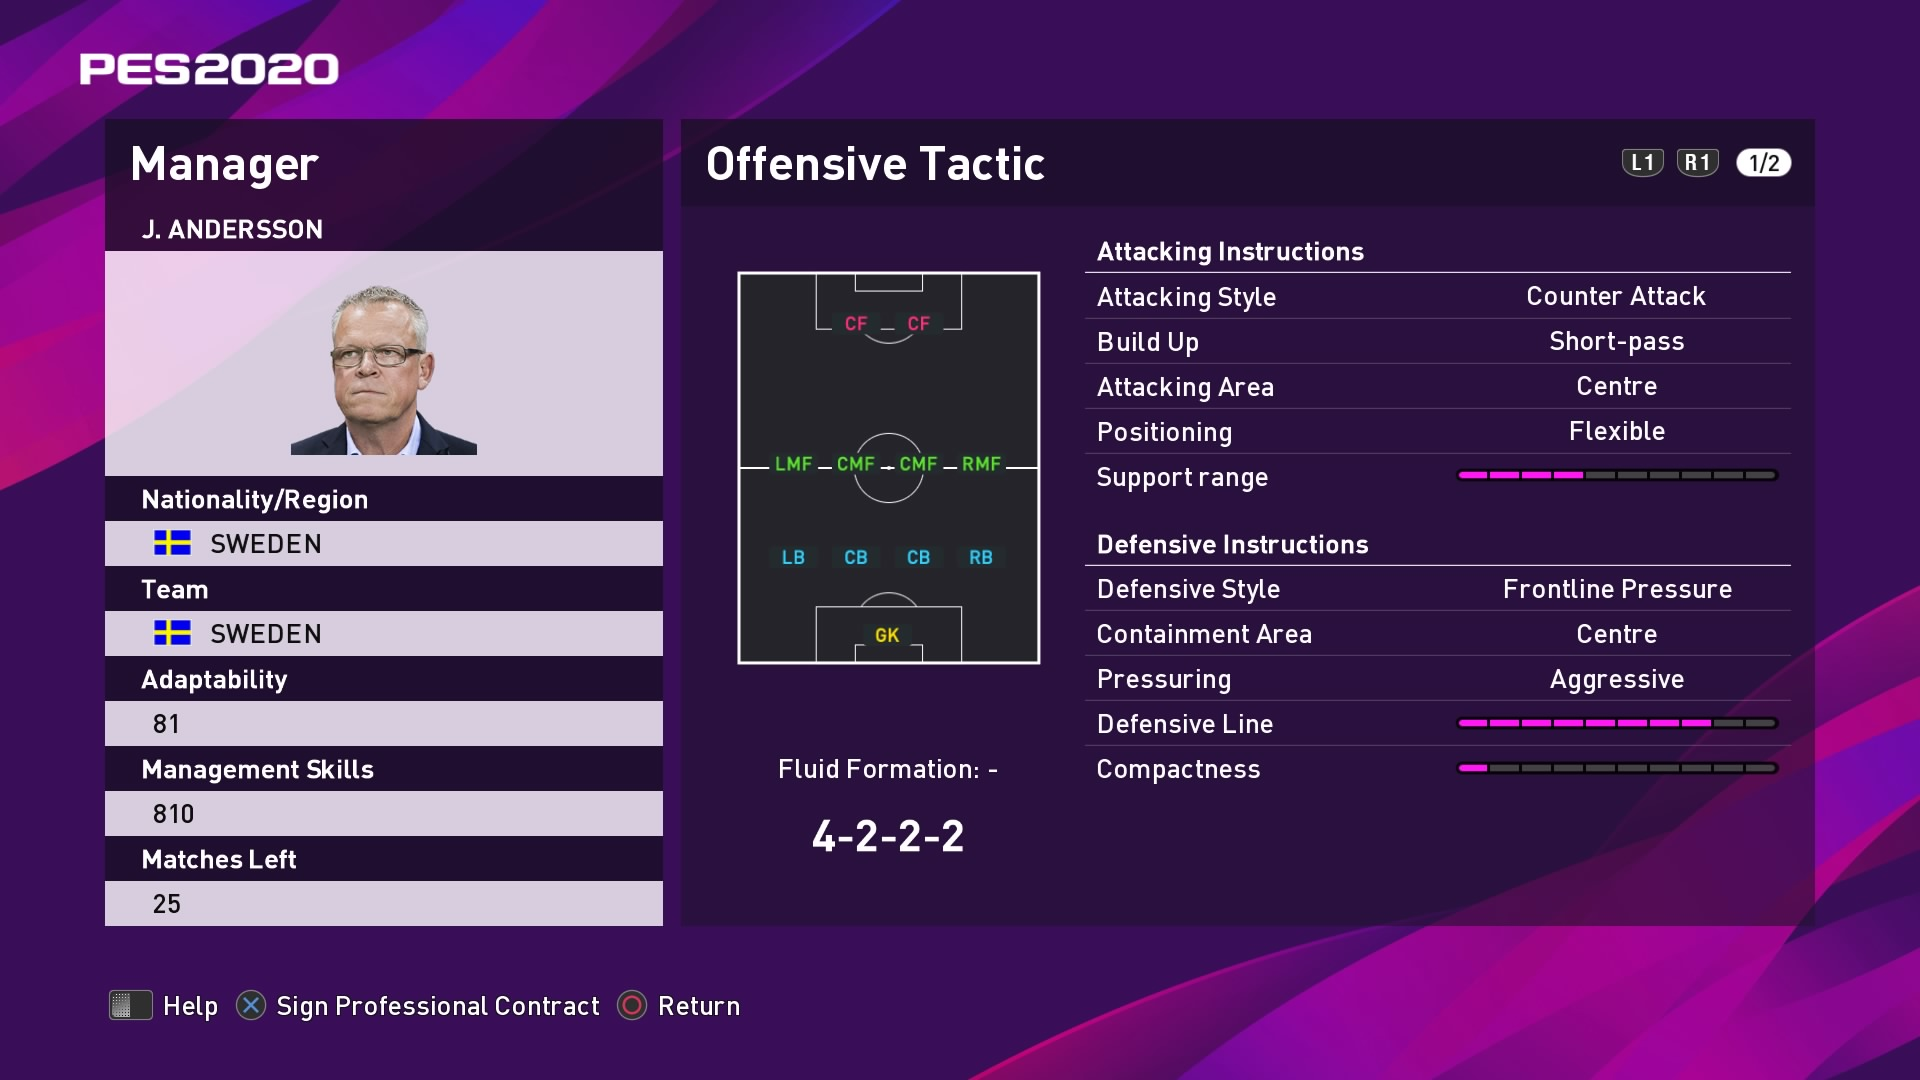 J. Andersson (2) (Janne Andersson) Offensive Tactic in PES 2020 myClub